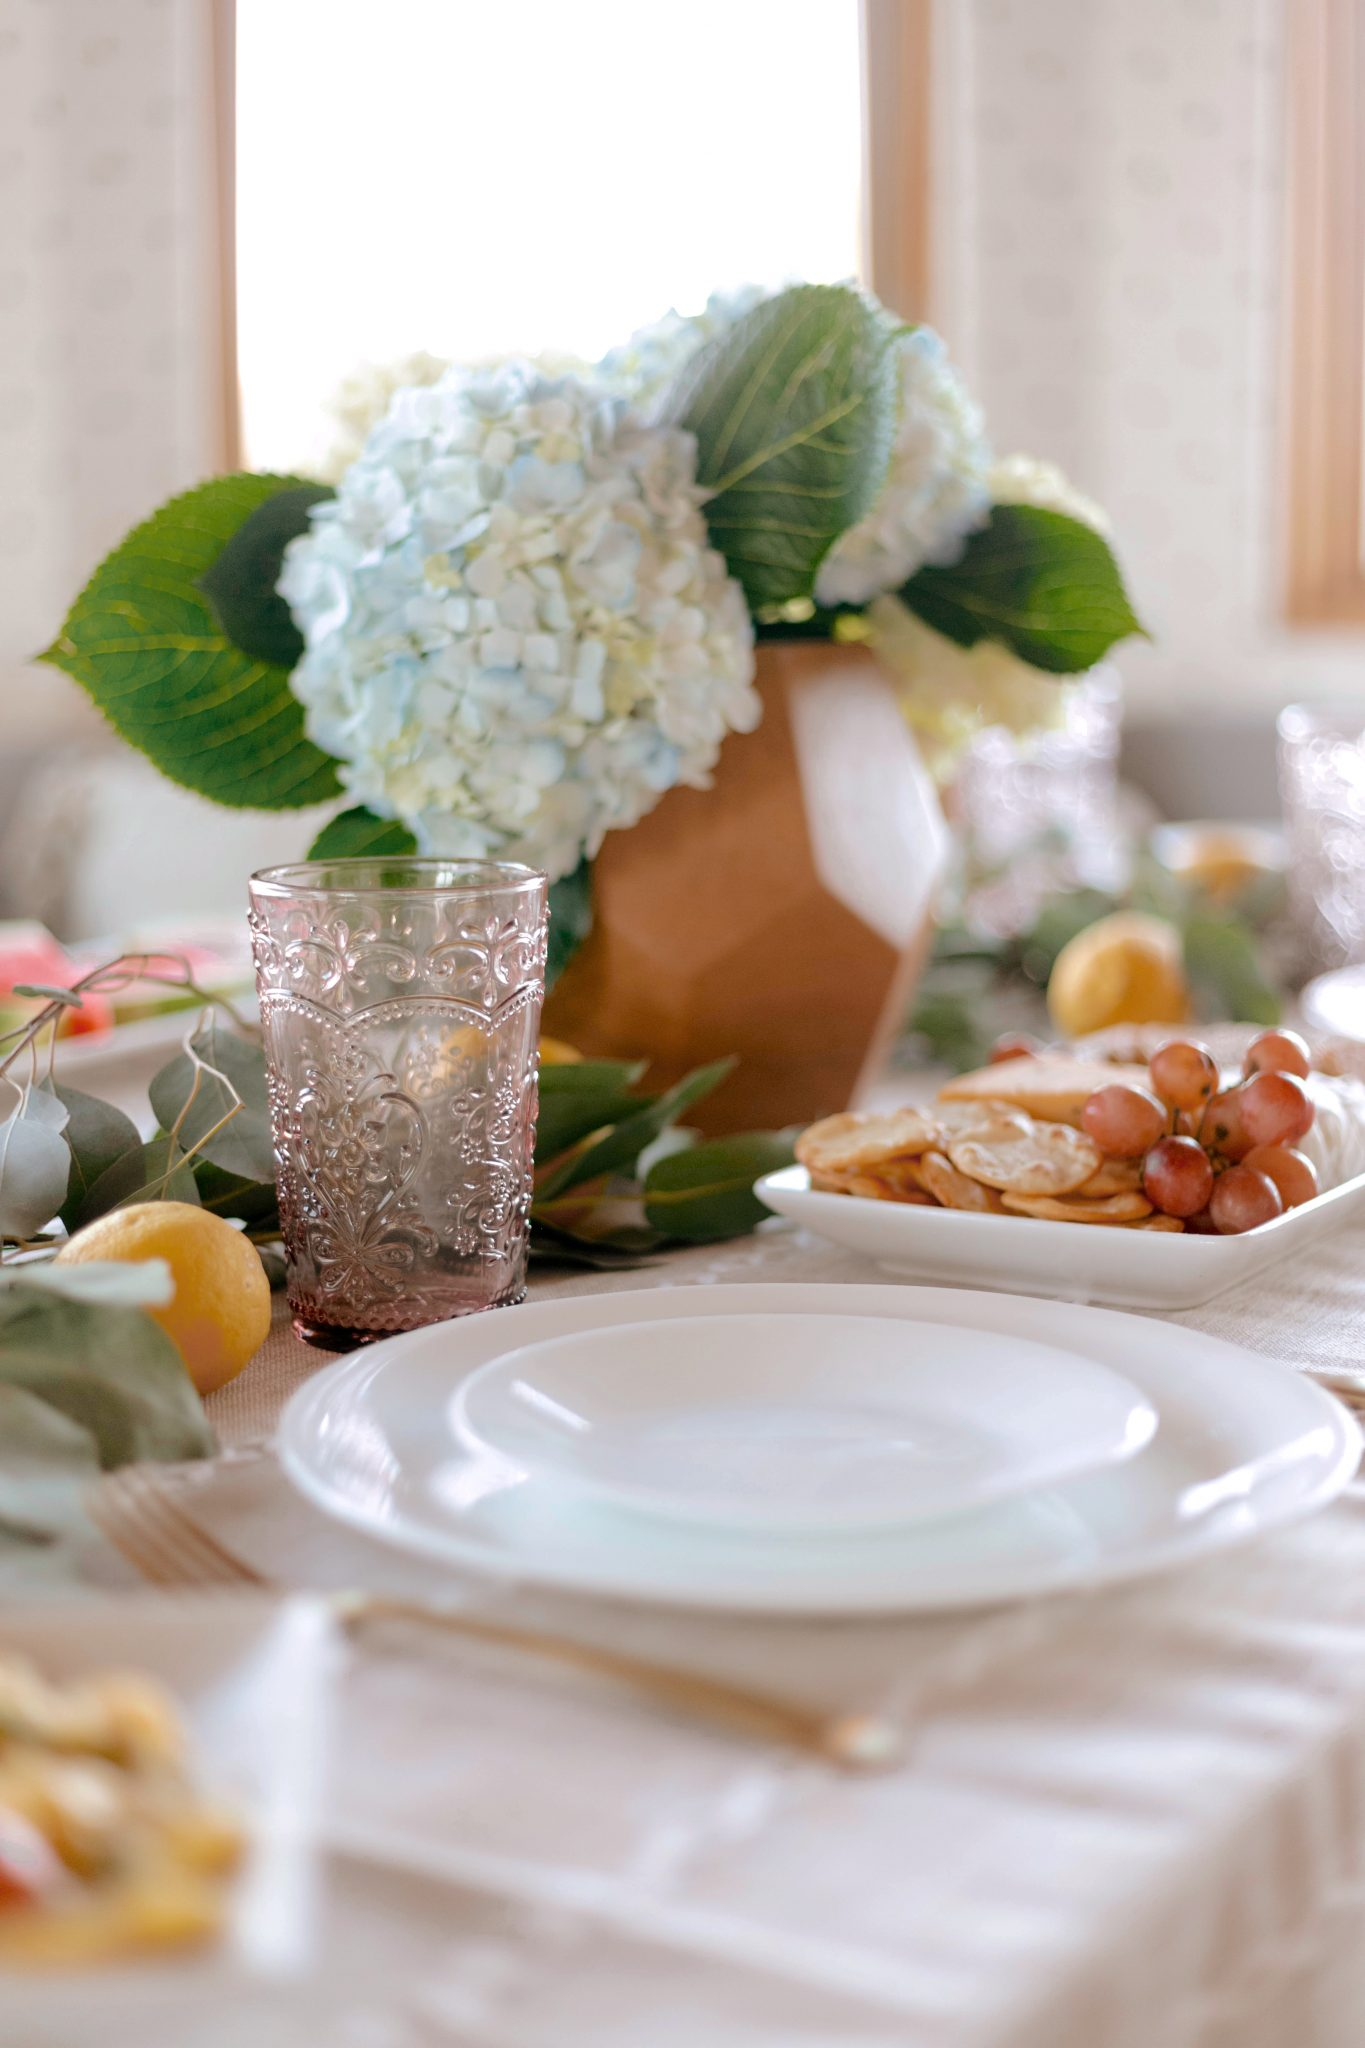 closeup of plates and food on table for hosting friends and family for dinner